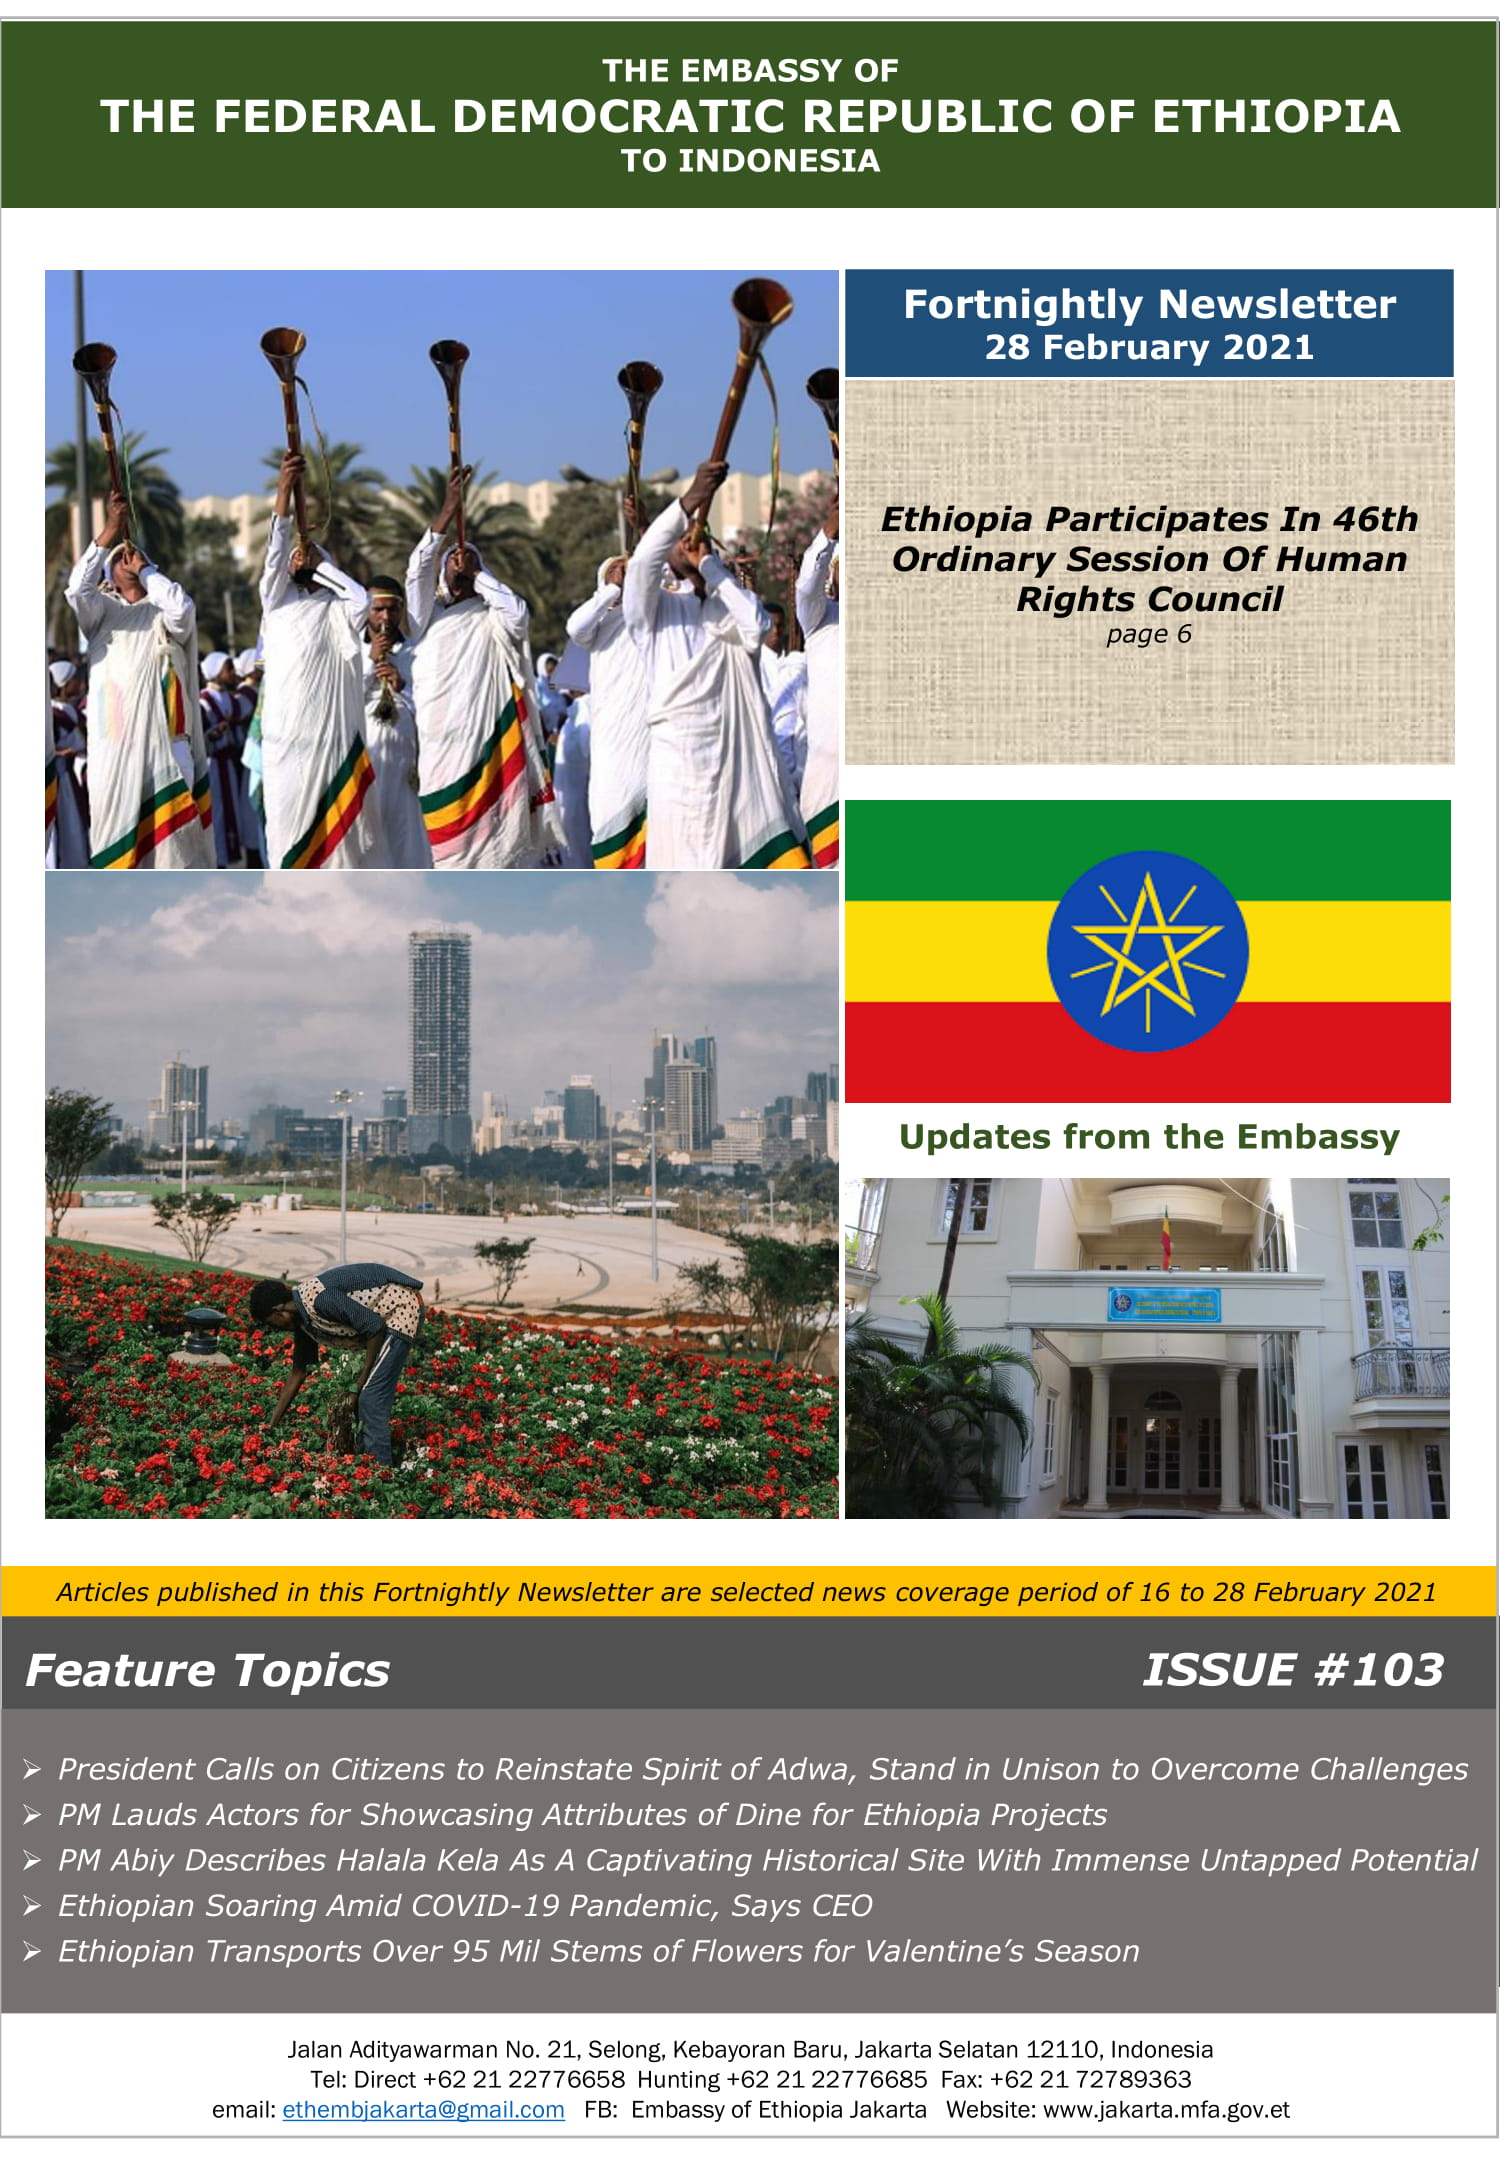 The Fortnightly Newsletter #103 – 28th of February 2021 from The Embassy of The Federal Democratic Republic of Ethiopia in Jakarta